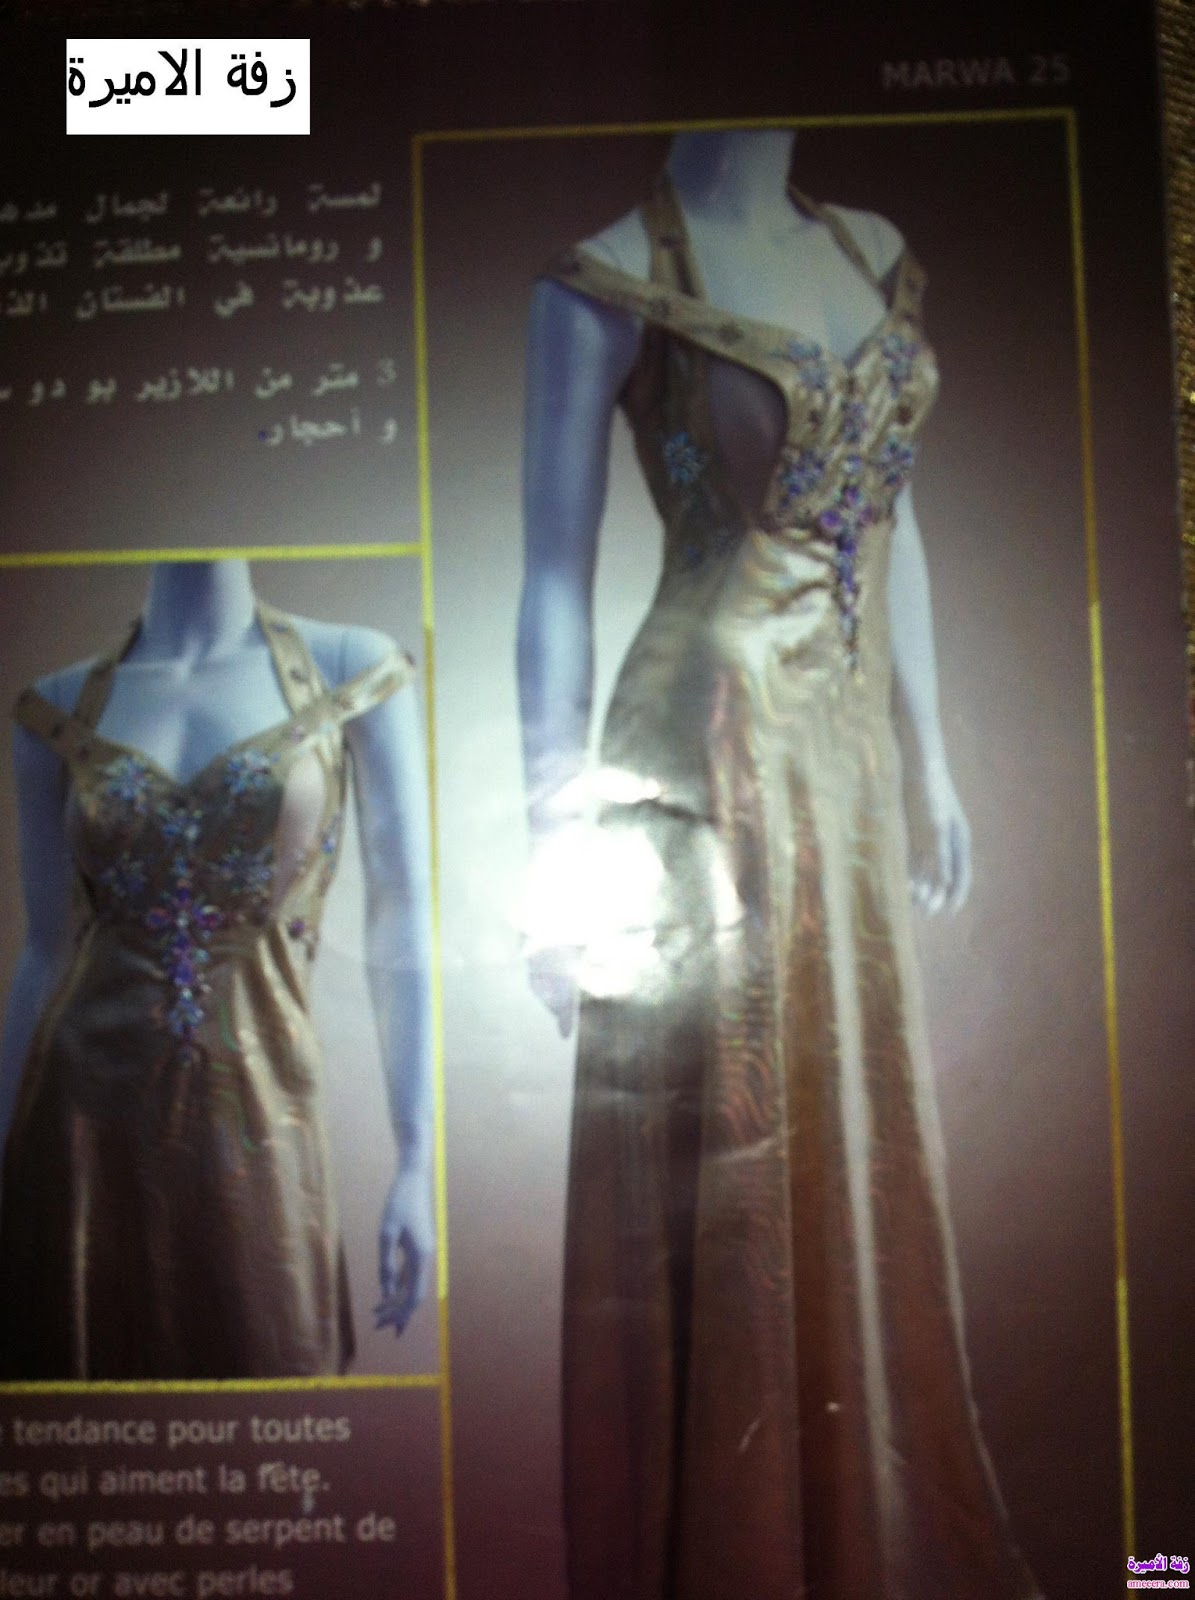 collection magazine marwa gandoura arassi soiré